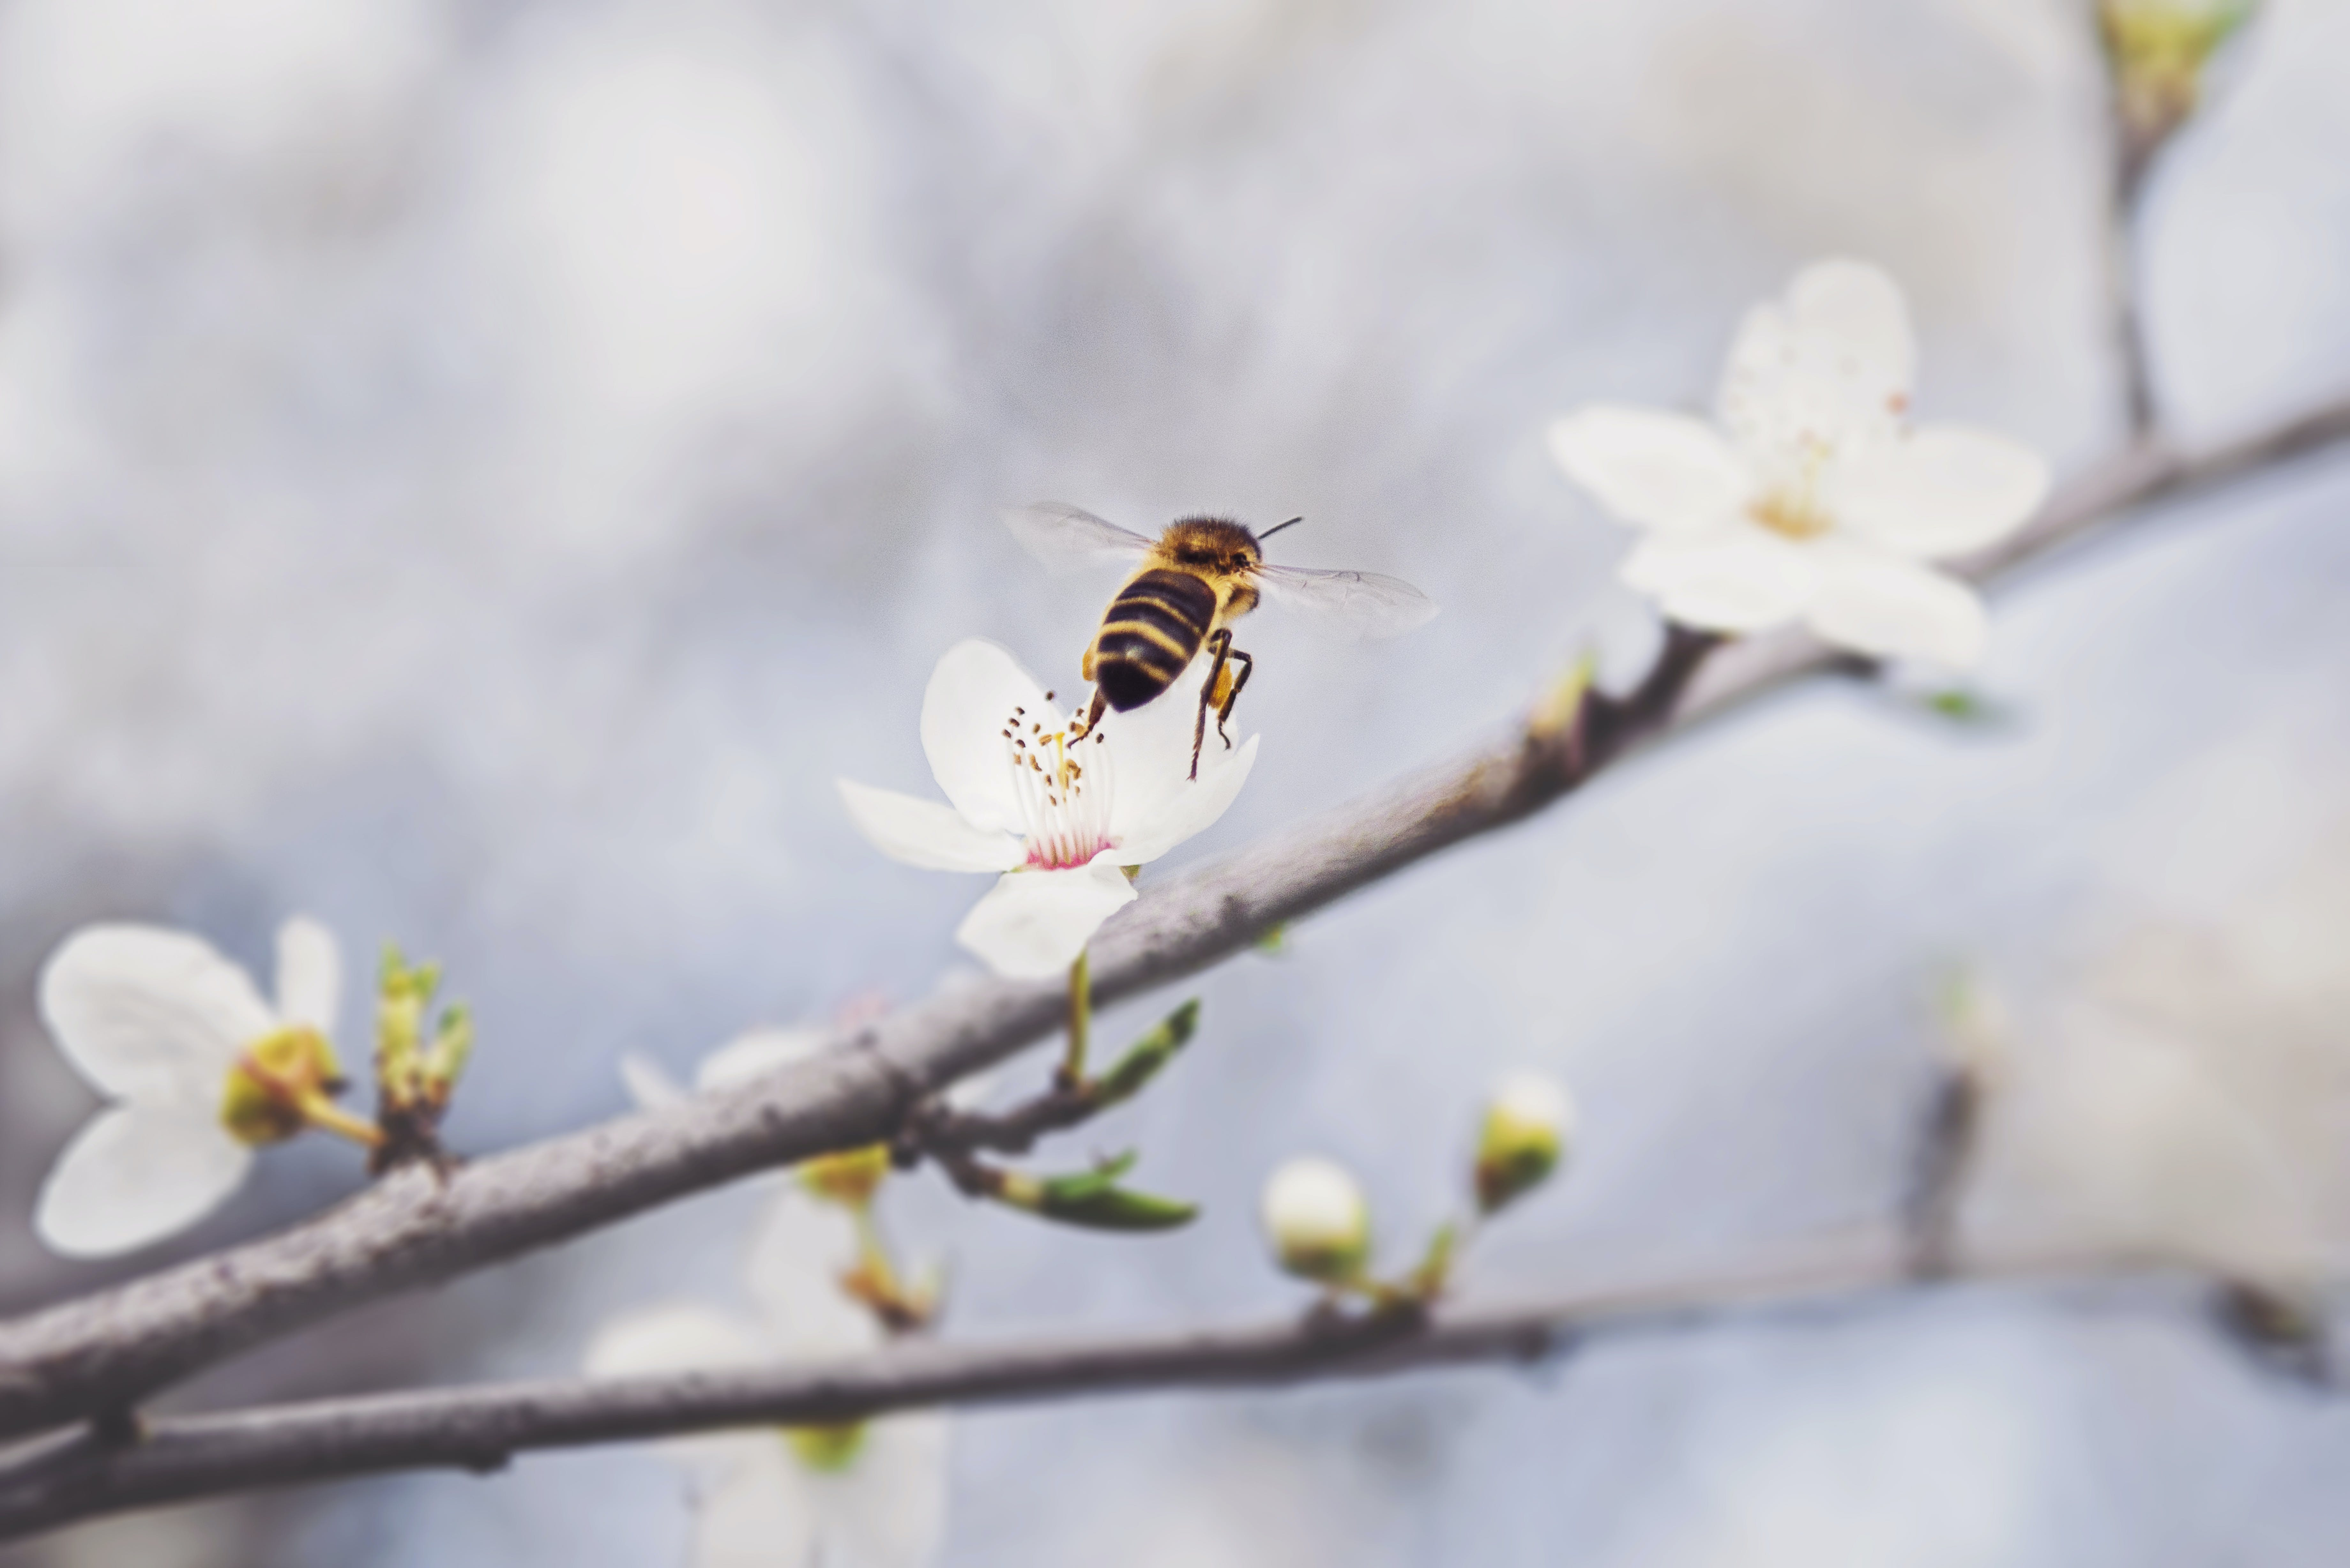 Bee Perched on White Petaled Flower